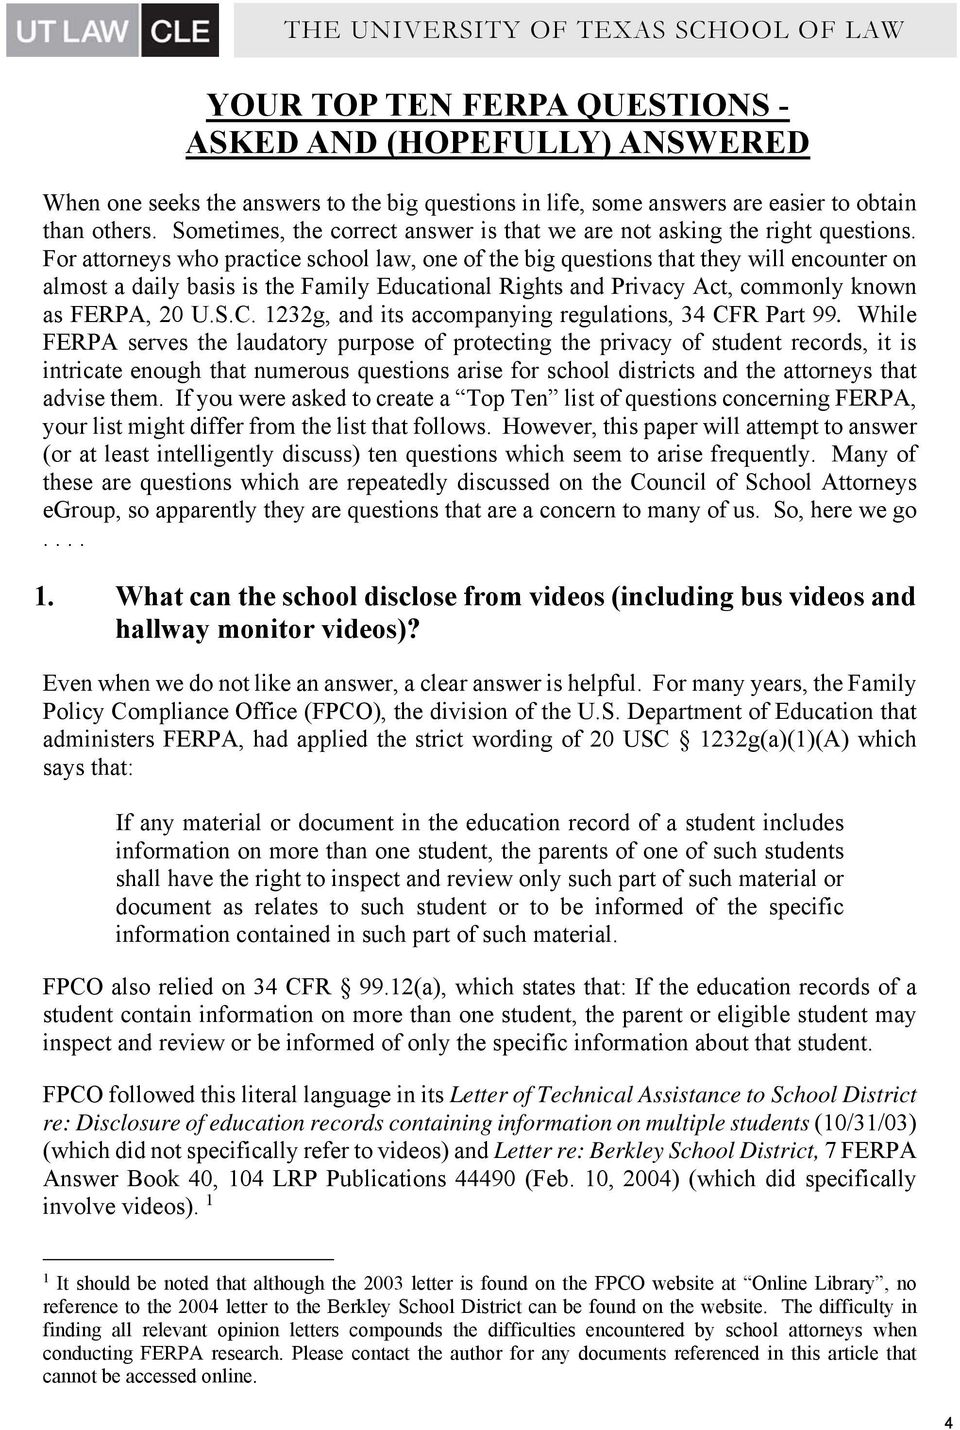 ferpa form ut austin  YOUR TOP TEN FERPA QUESTIONS ASKED AND (HOPEFULLY) ANSWERED ...